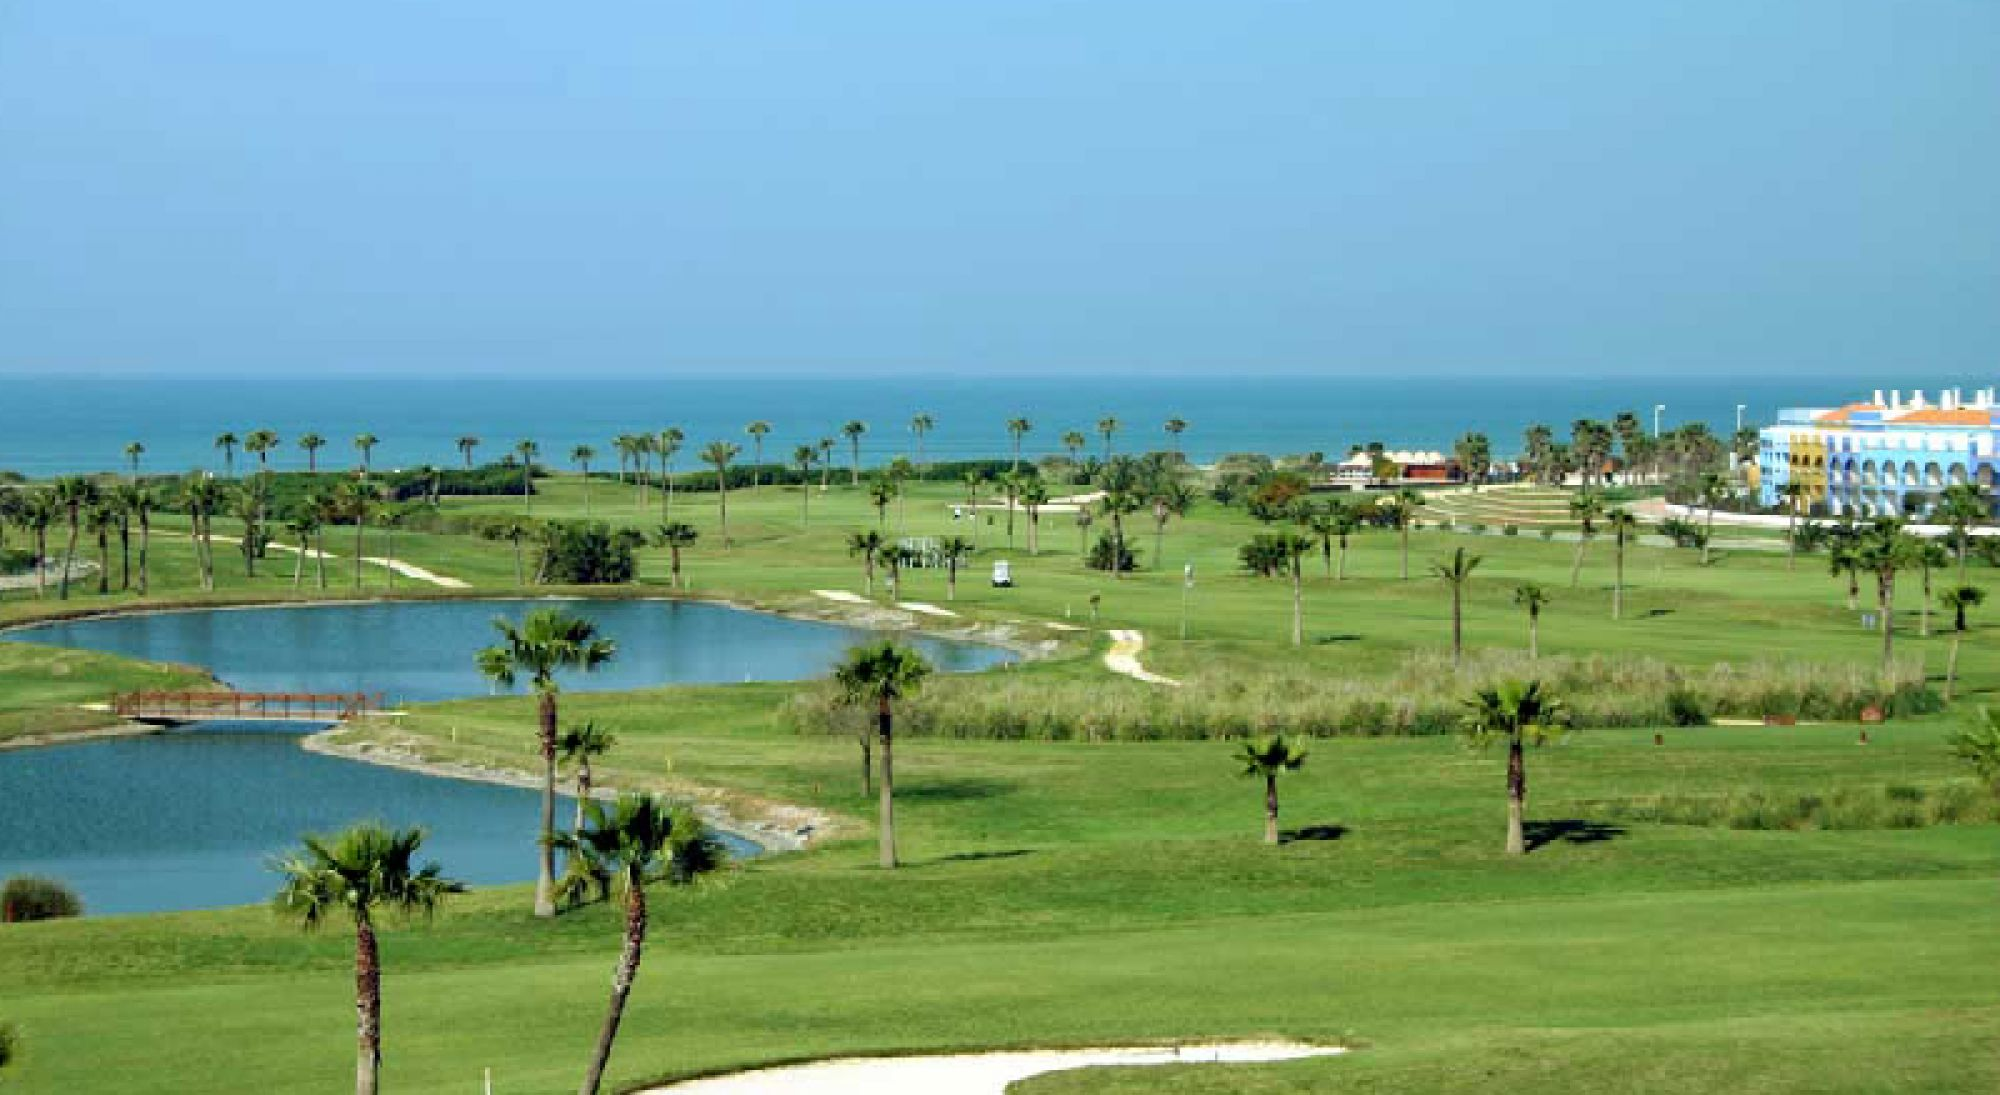 Costa Ballena Ocean Golf Club features some of the finest golf course in Costa de la Luz